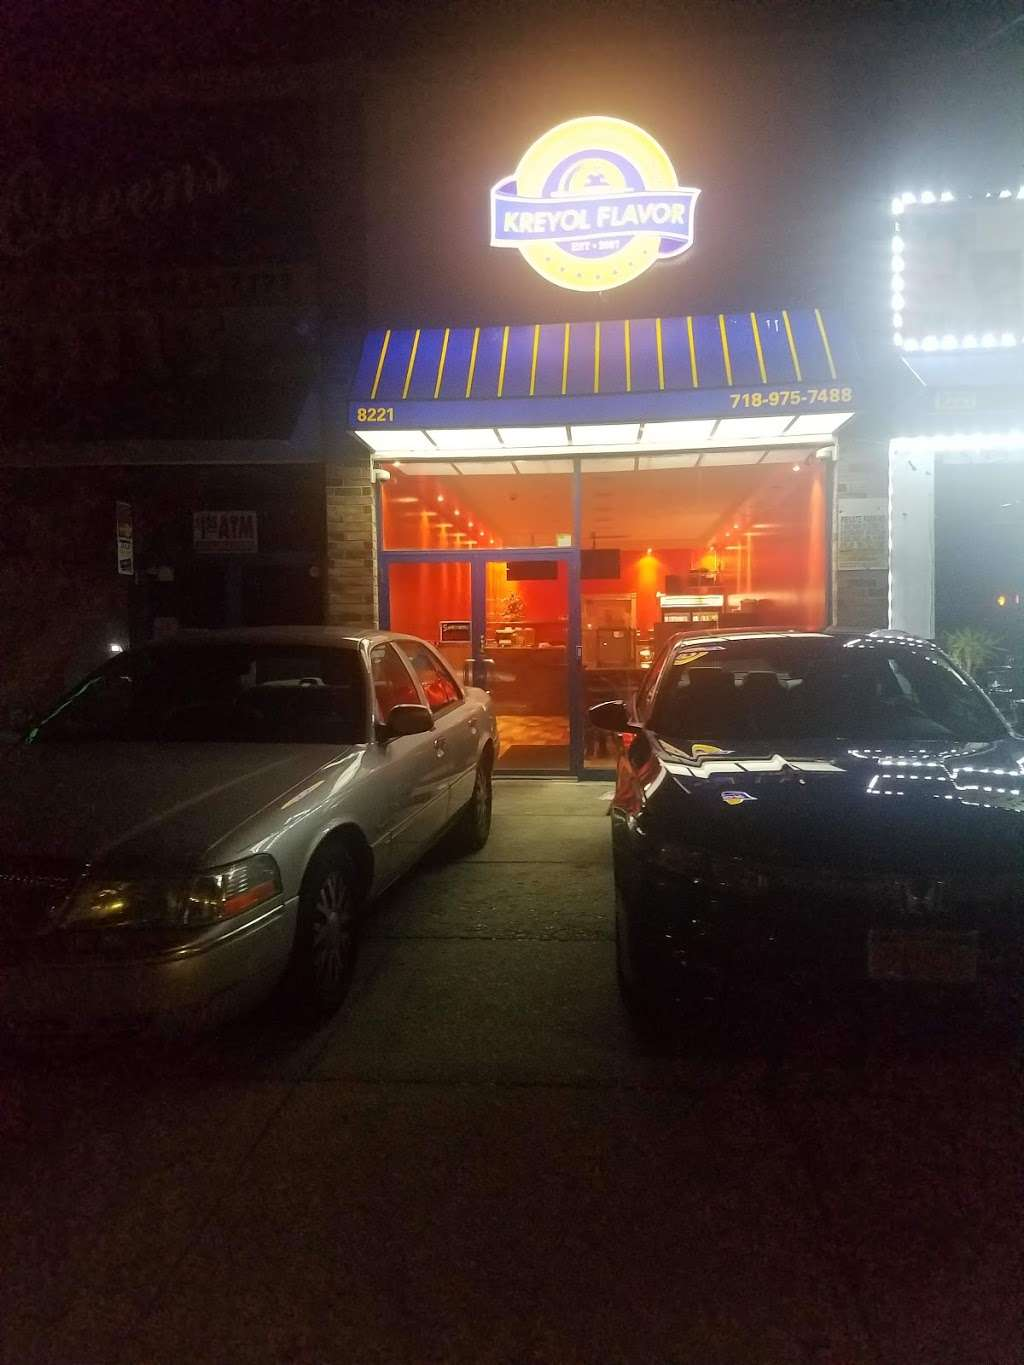 Kreyol Flavor - restaurant  | Photo 1 of 3 | Address: 8221 Flatlands Ave, Brooklyn, NY 11236, USA | Phone: (718) 975-7488